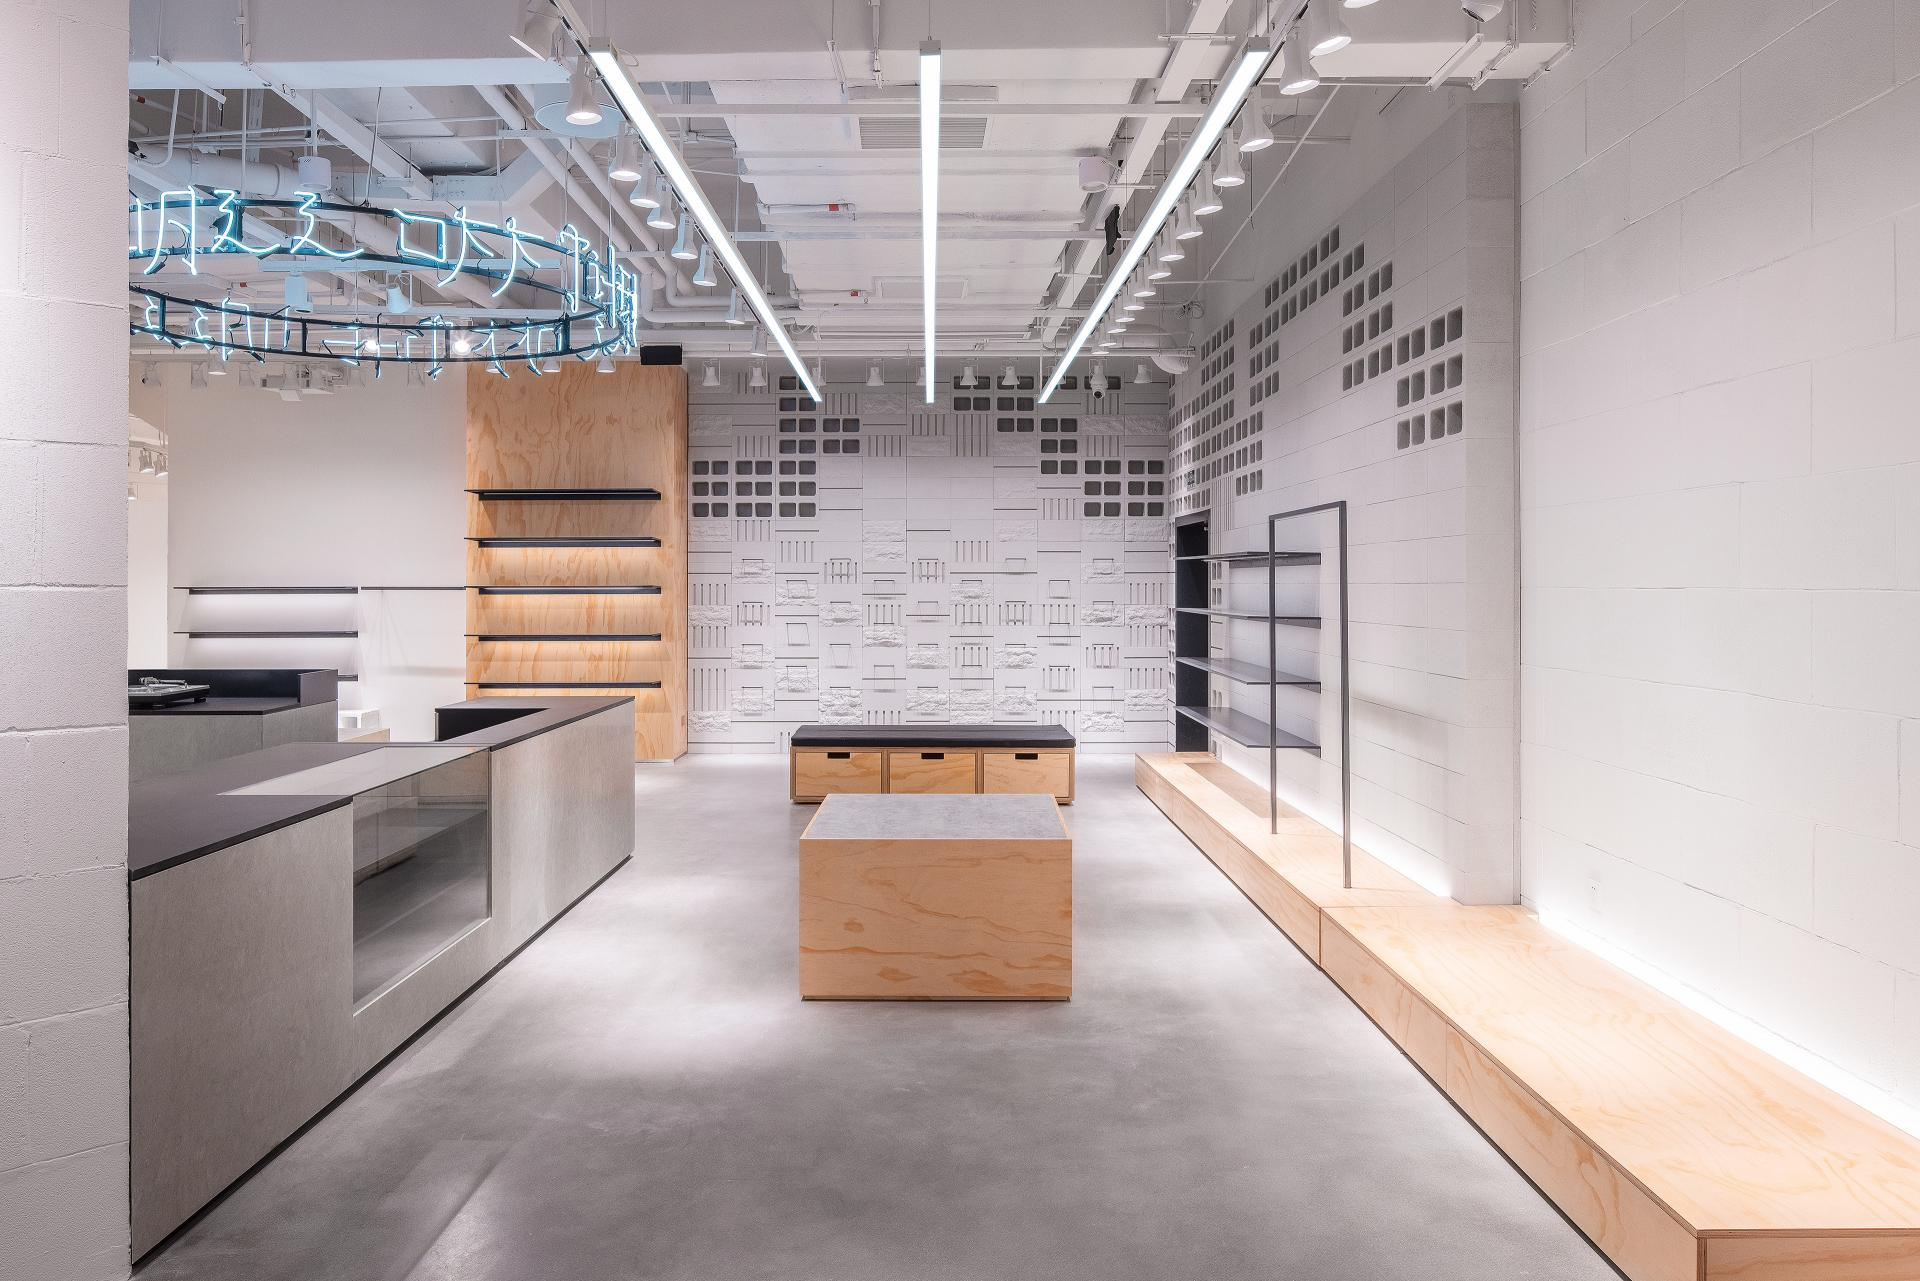 FRAME | Vans' new experiential Shanghai store taps into youth culture